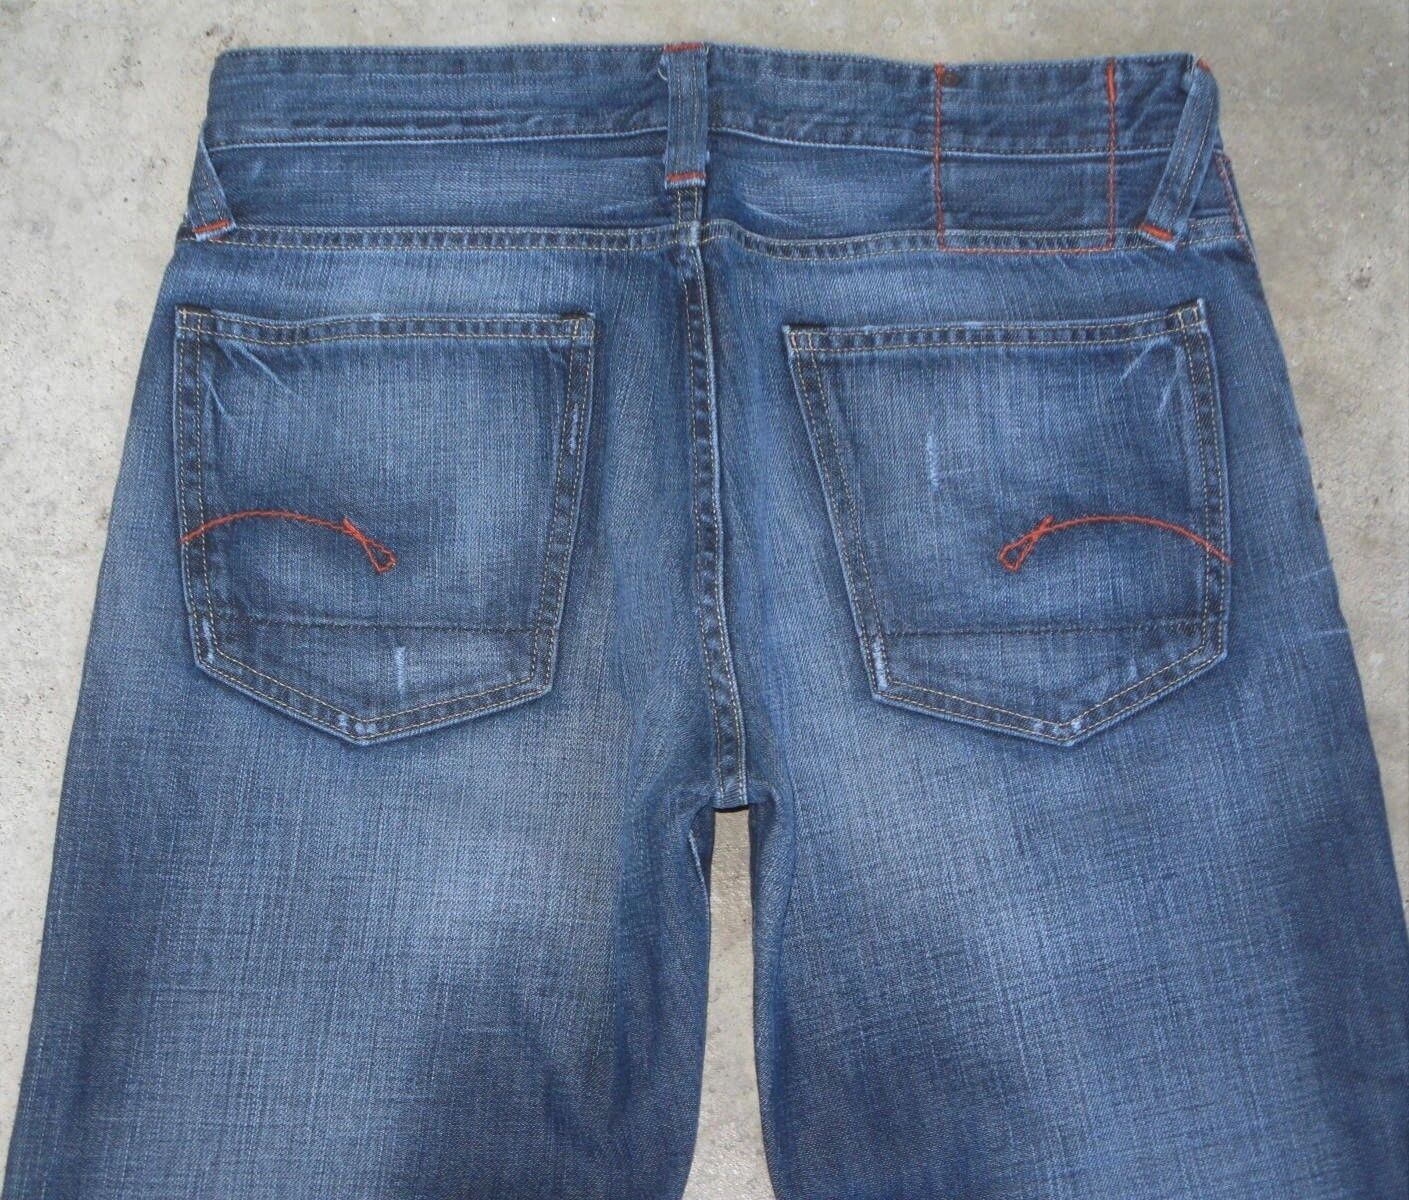 G - Star Raw Jeans Mens Core Regular 100% Cotton Distressed Sz 33 X 30 Relaxed